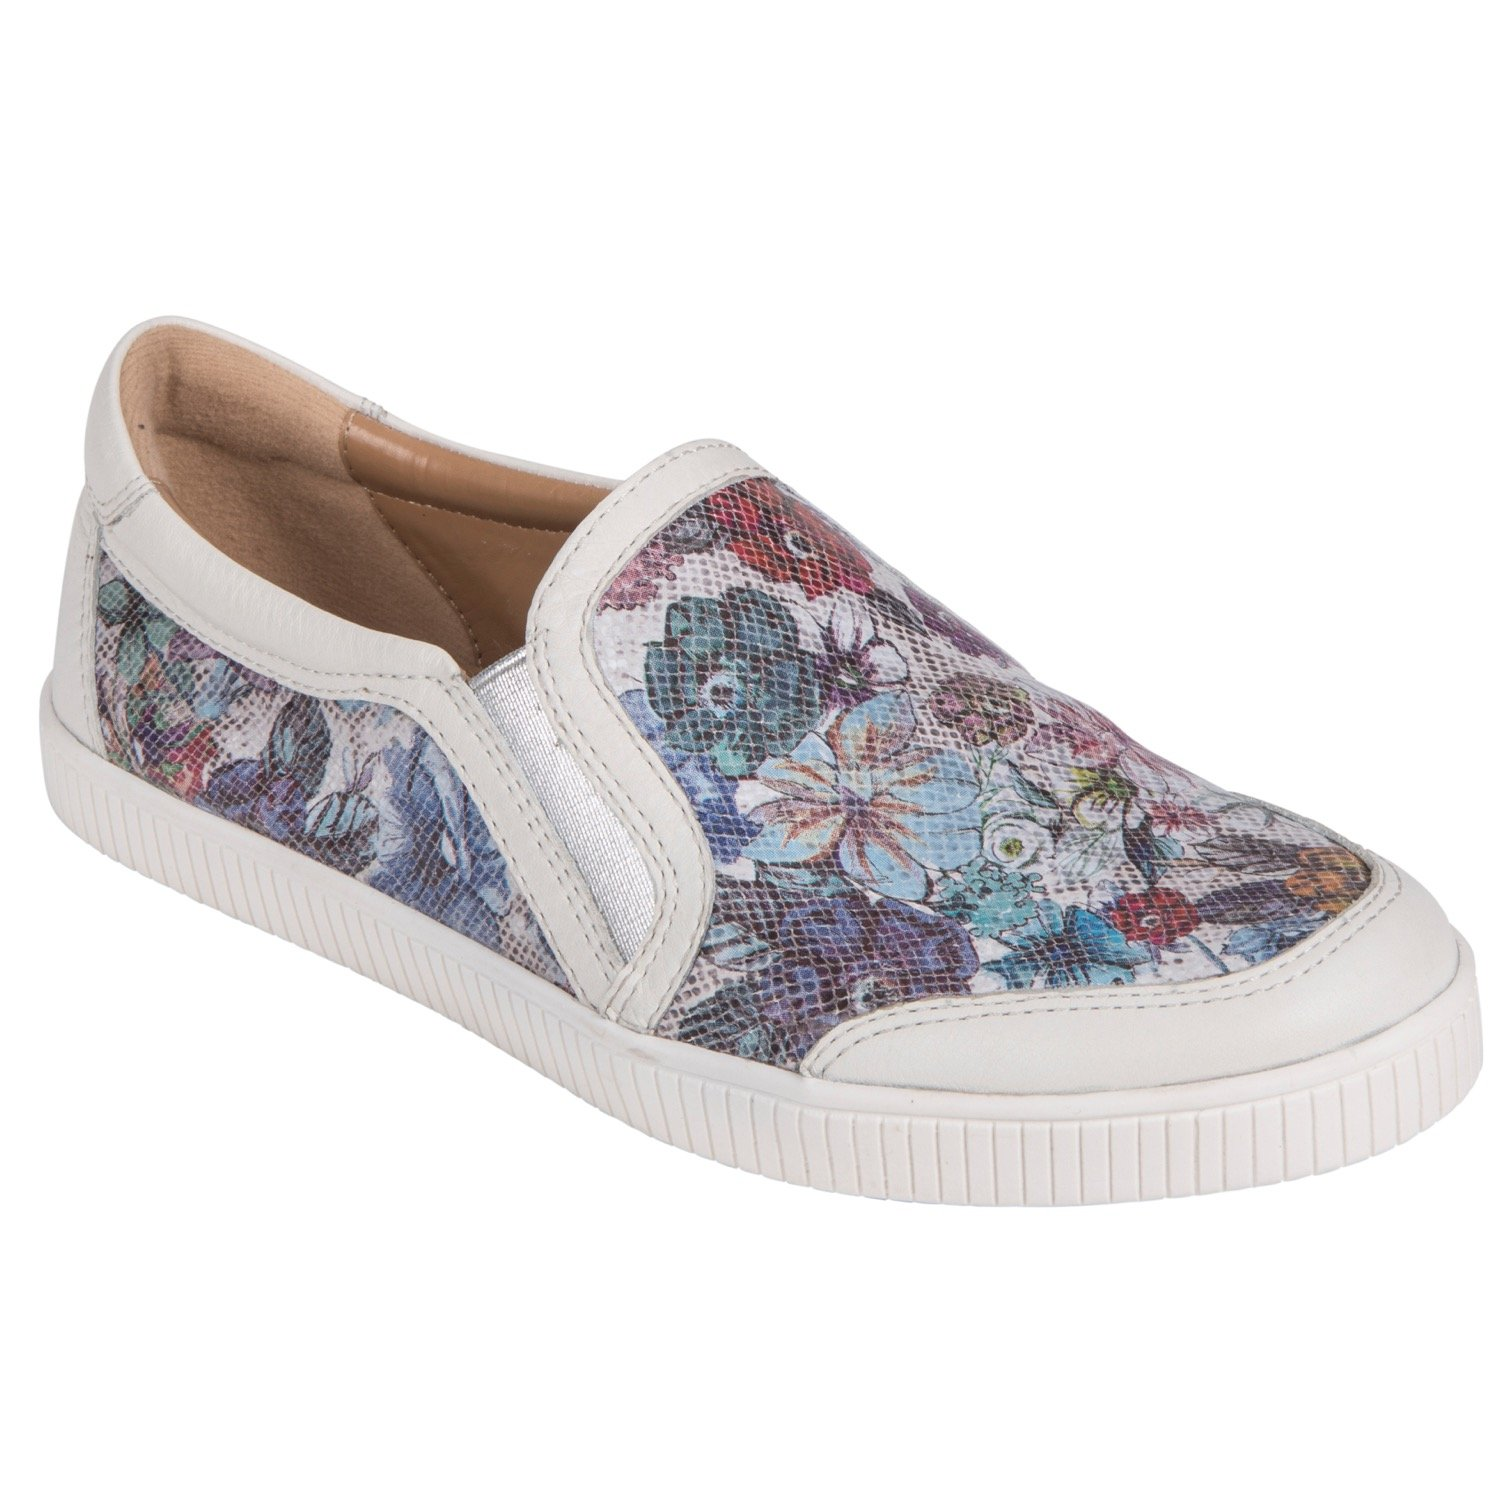 Earth Shoes Currant B079635BF6 8 B(M) US|Floral Multi